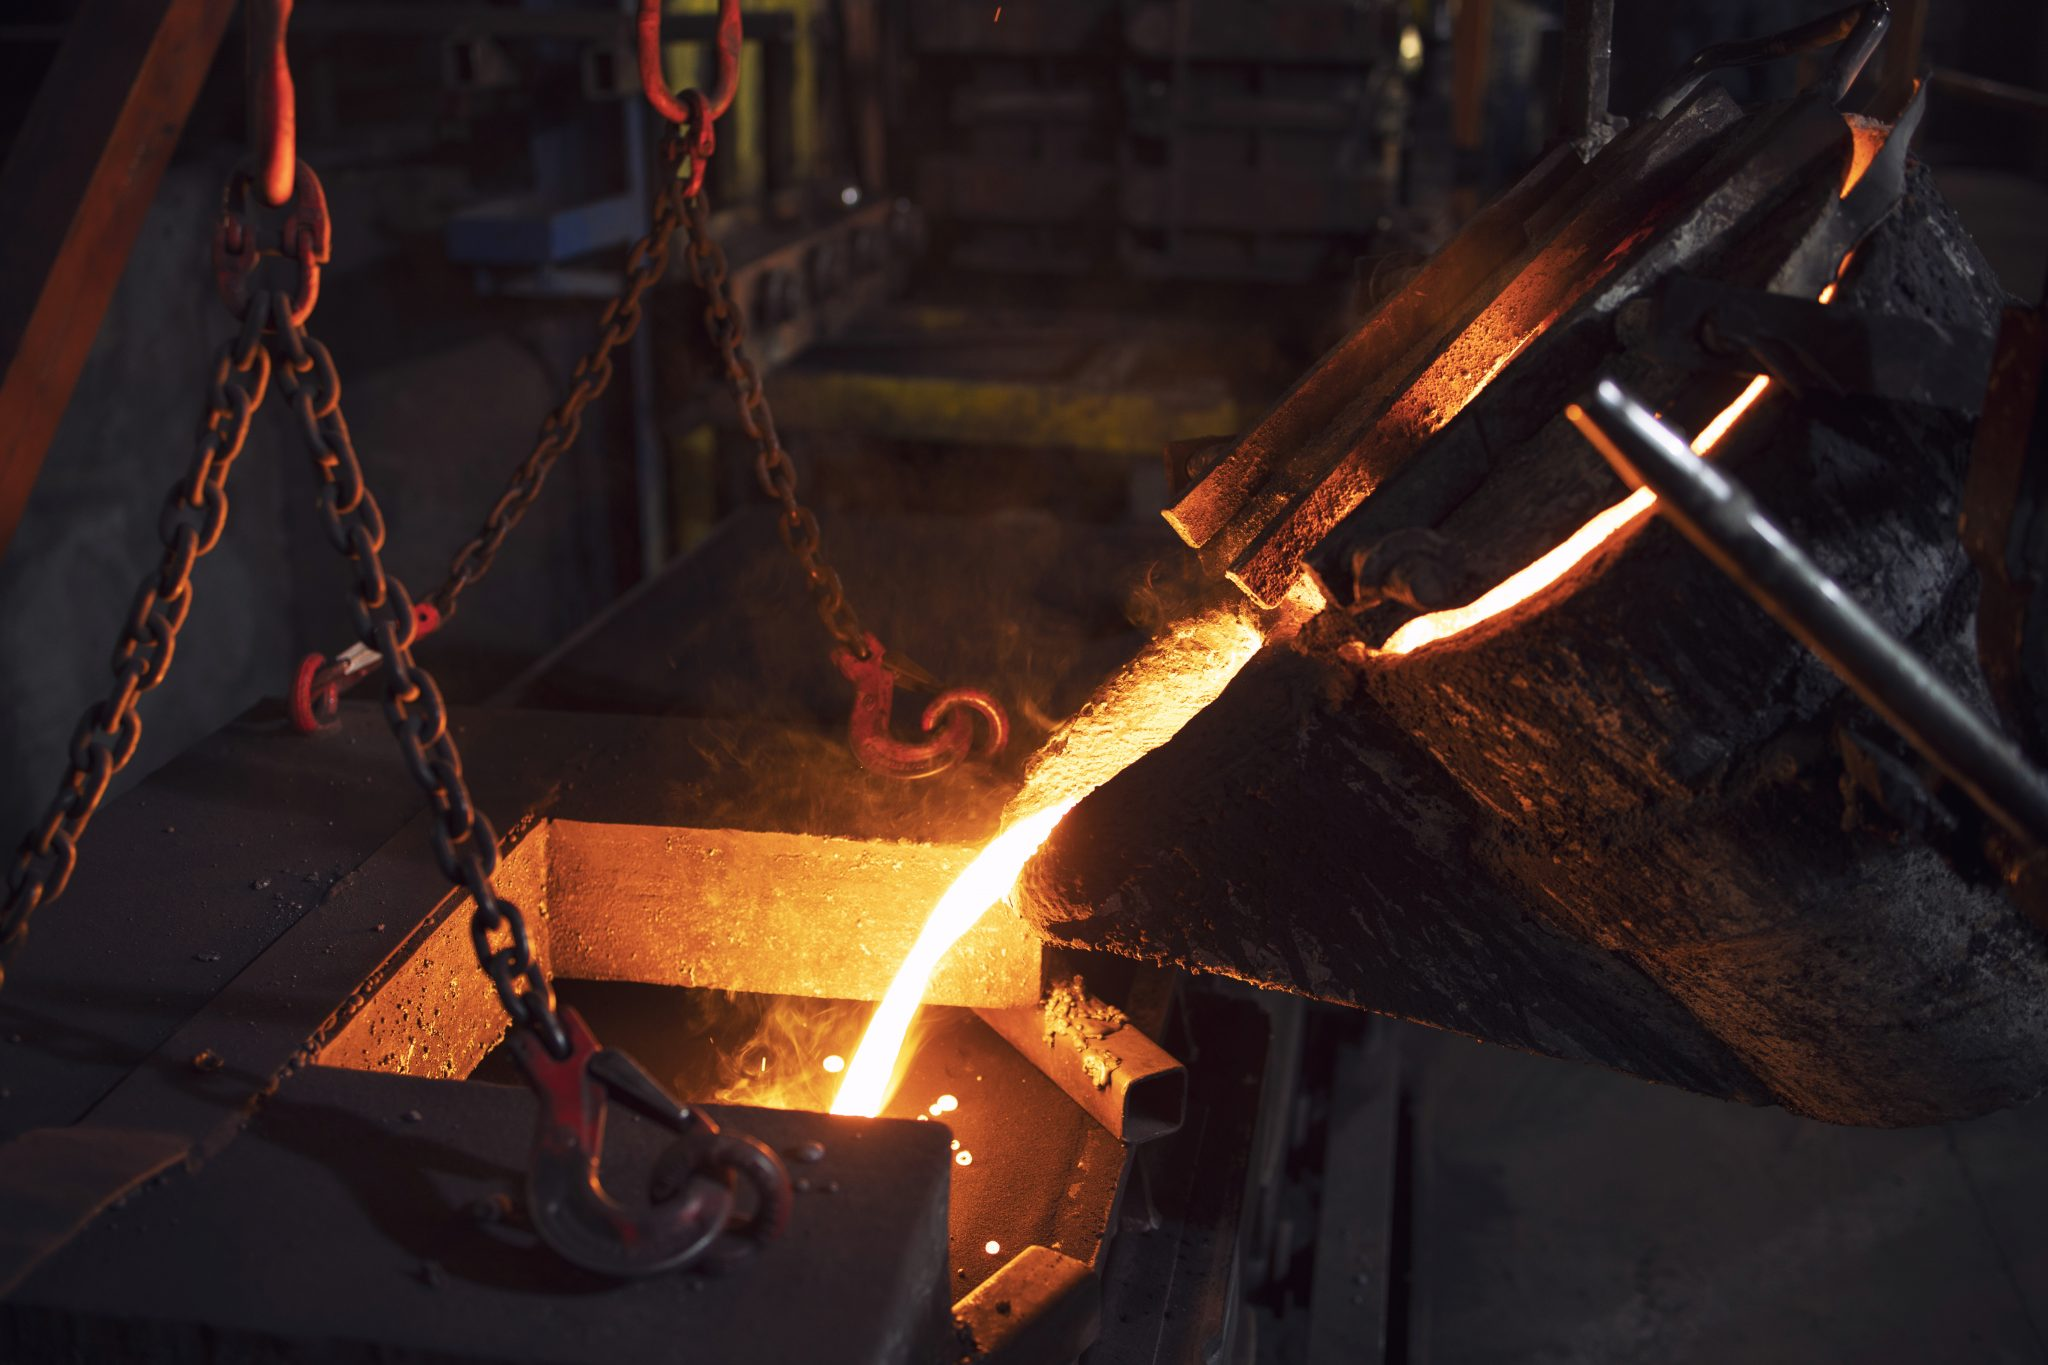 Filling cast with molten iron in foundry. Metallurgy and industry.